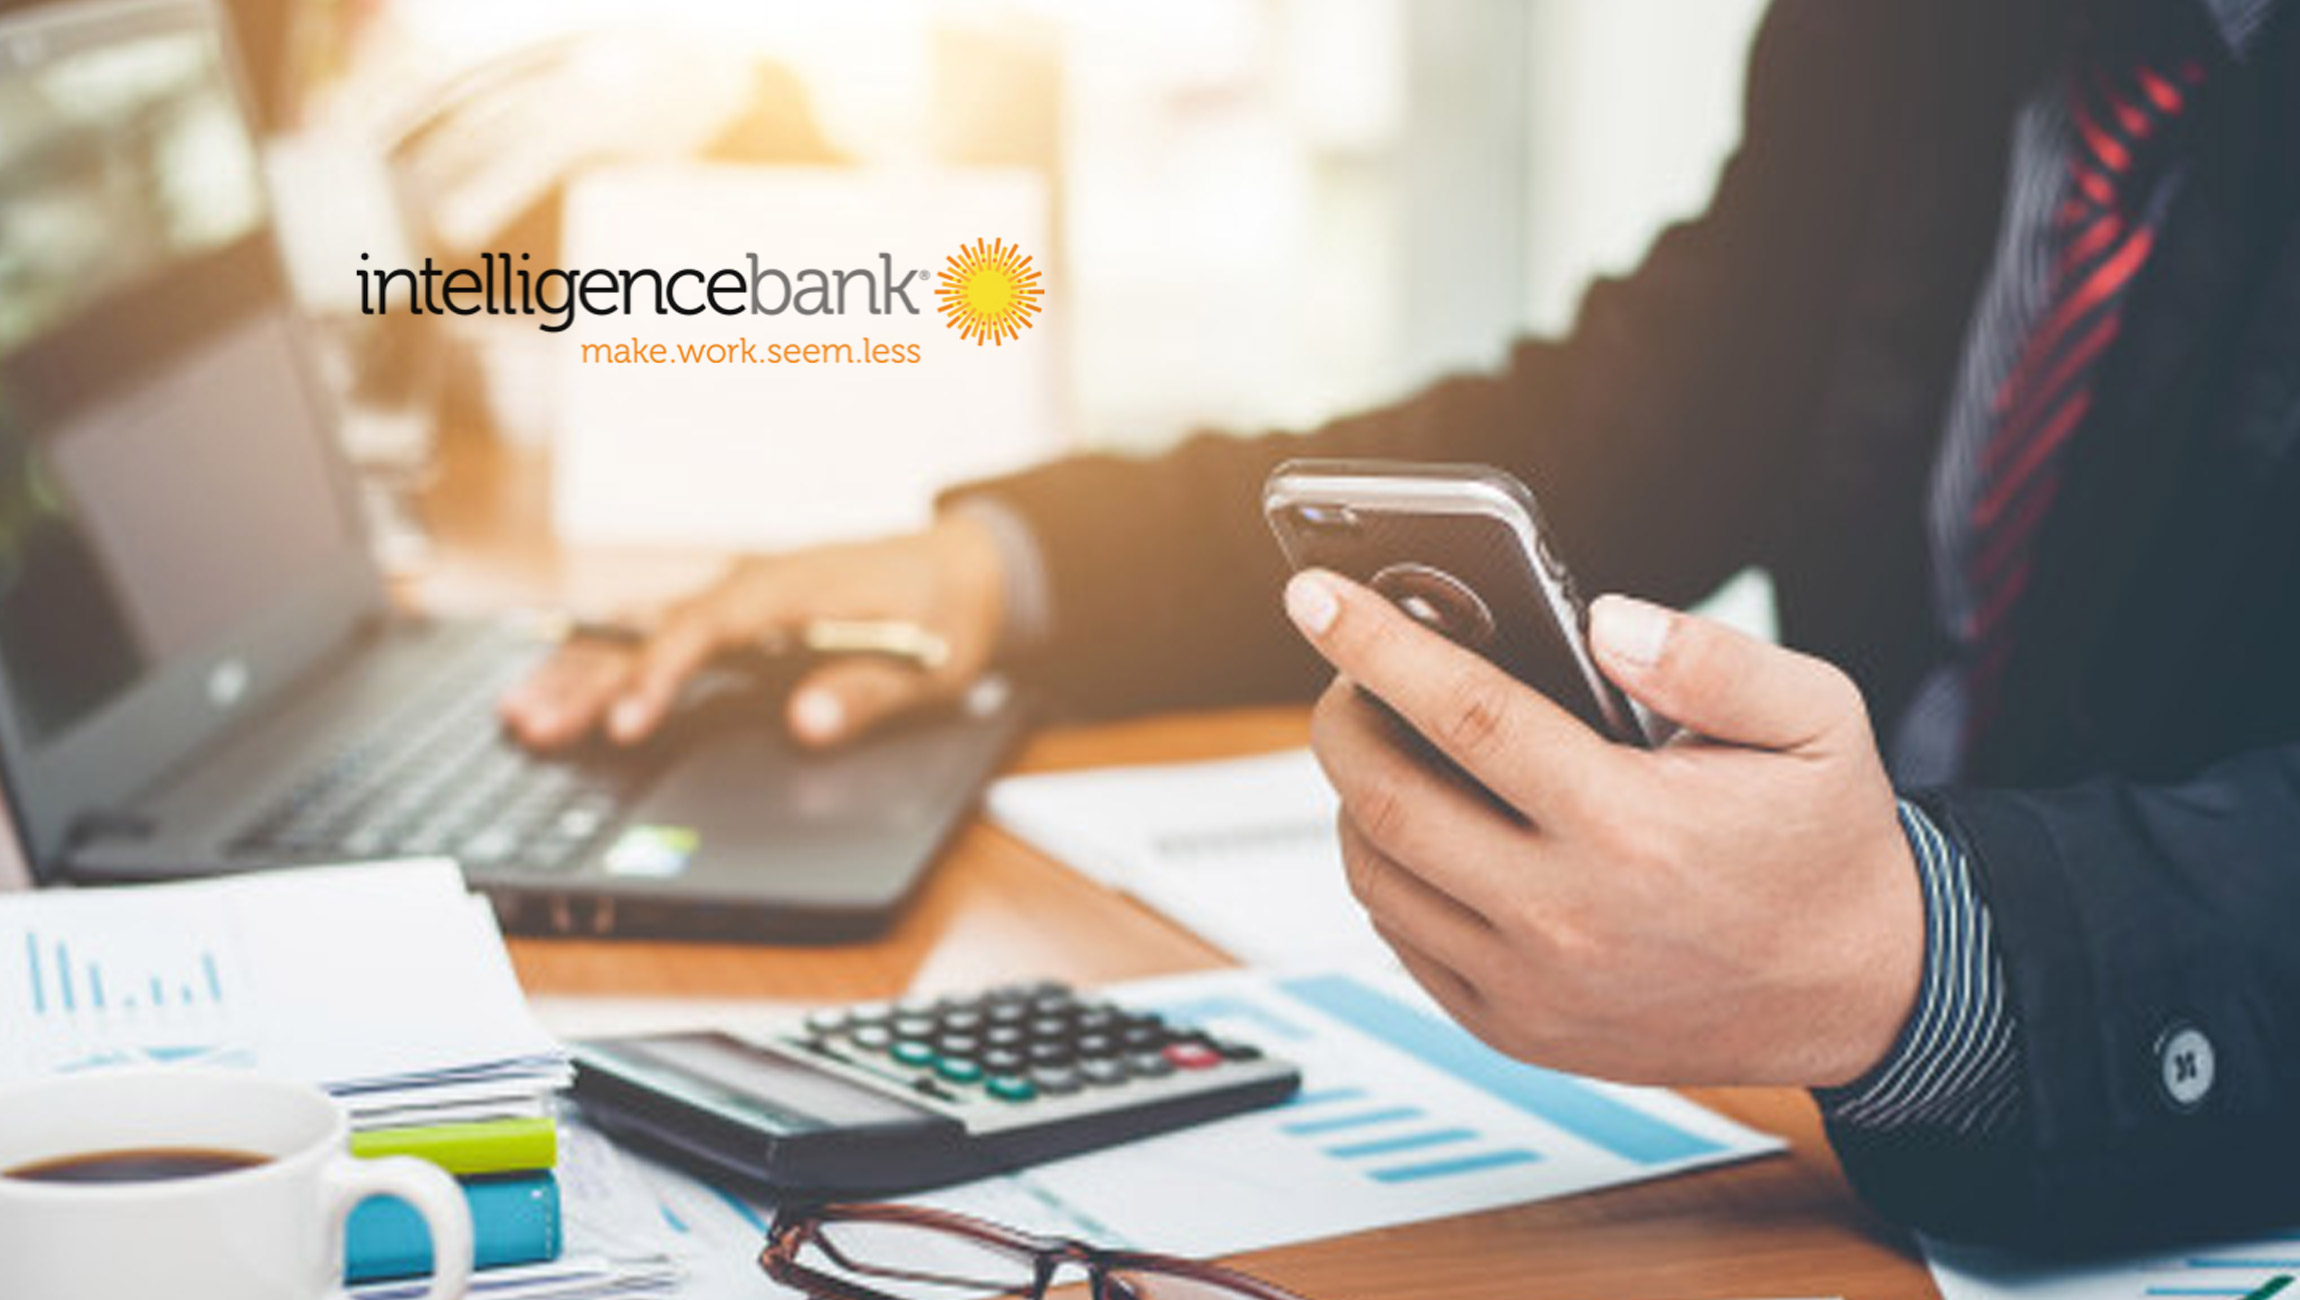 IntelligenceBank Launches Upgrades to Its Online Proofing and Approvals 1